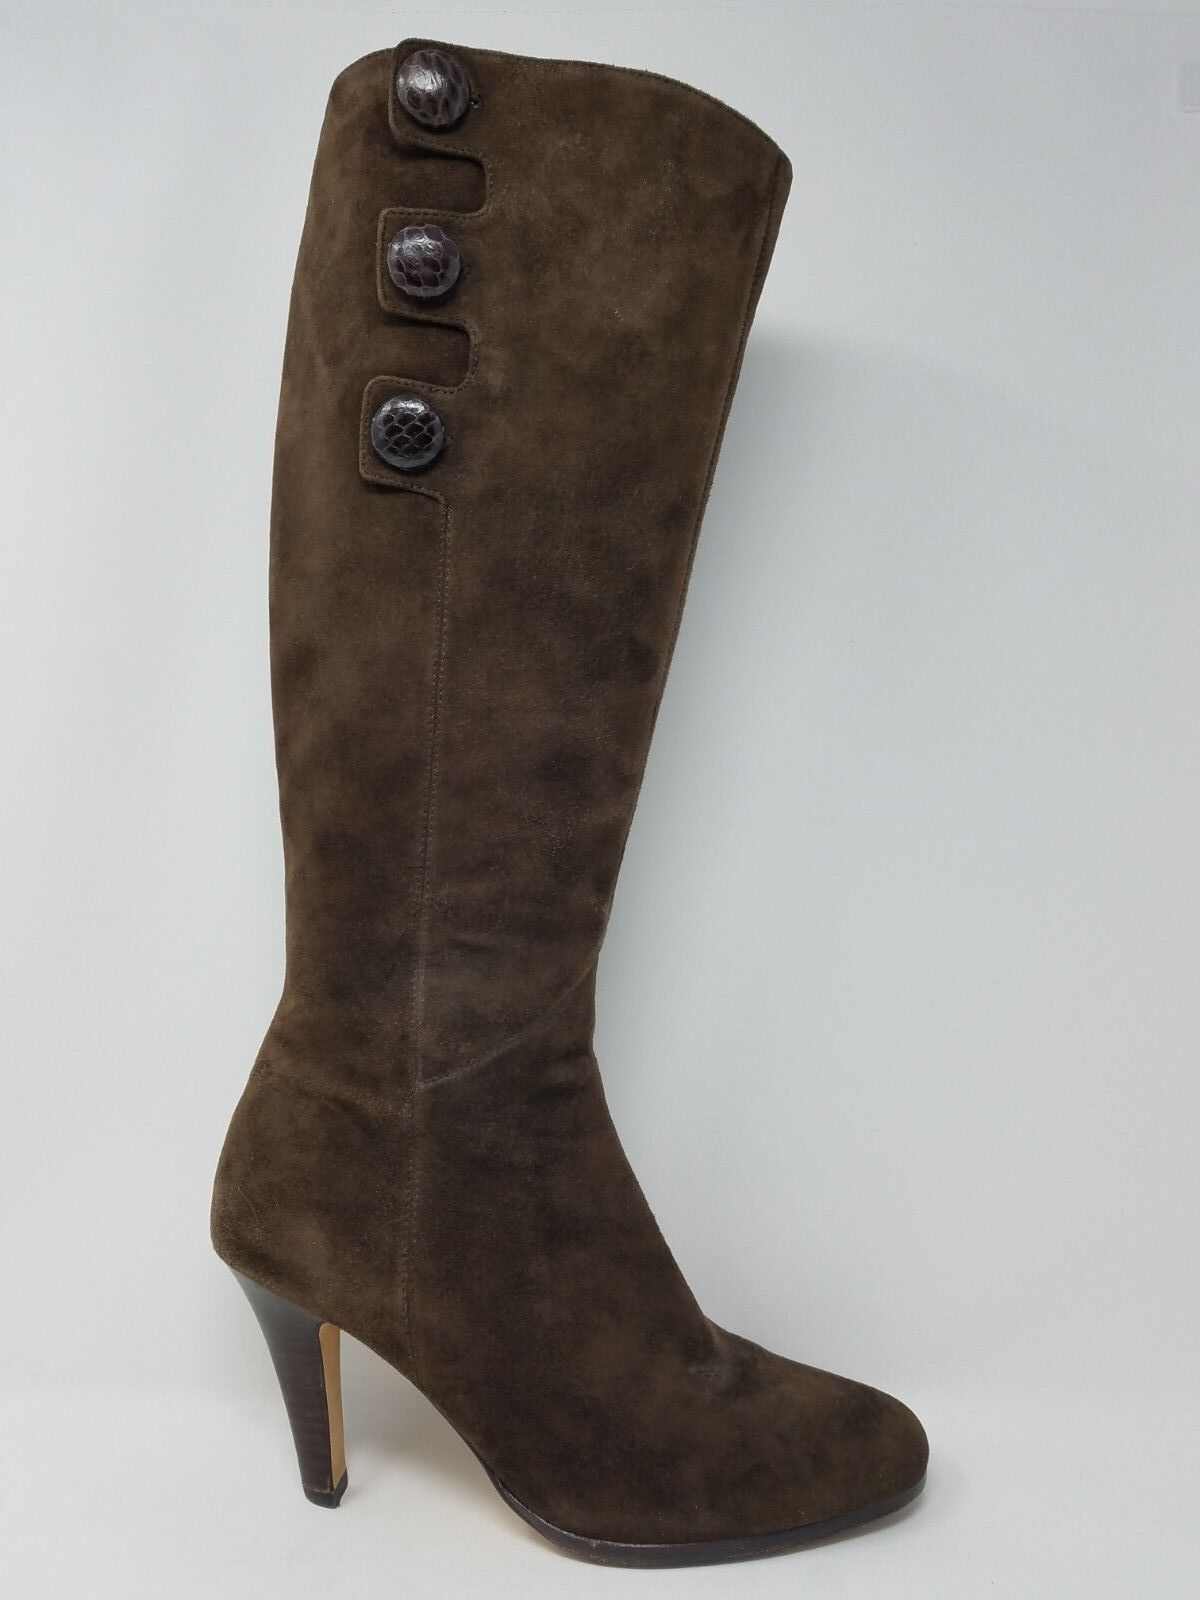 Cole Haan Air Womens Knee High Boot Size 7.5 Brown Suede Leather Zip Up